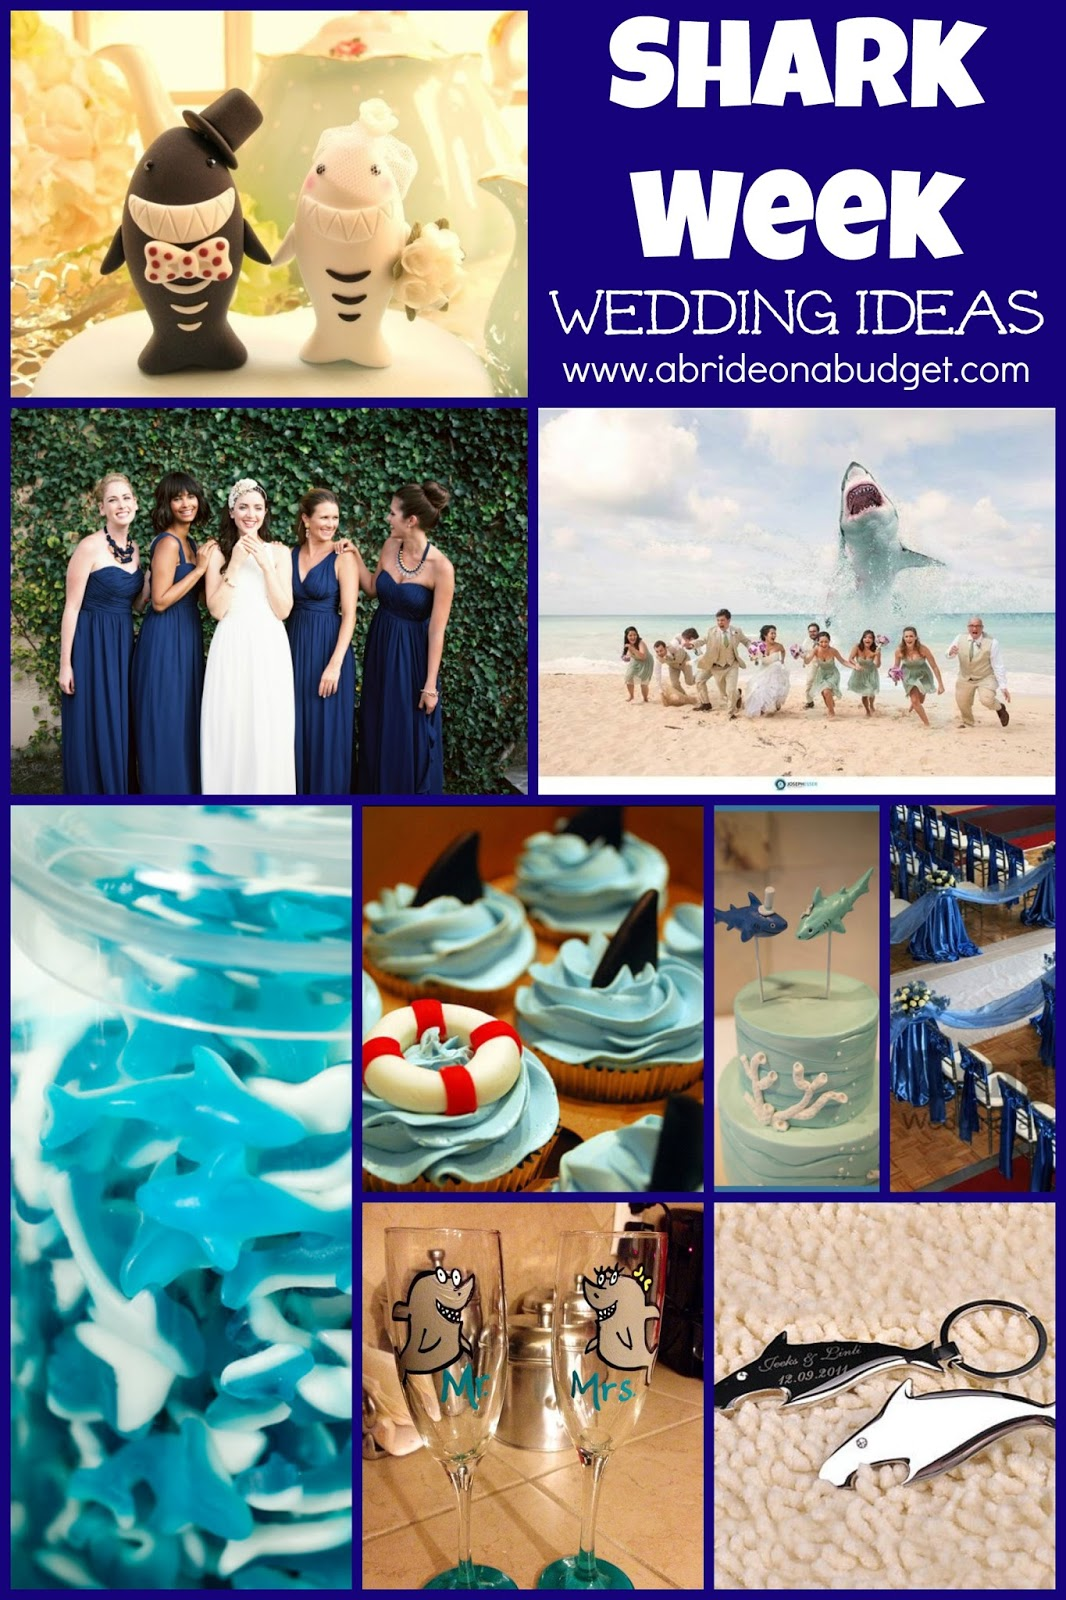 If you're excited about Discovery's Shark Week, you'll LOVE these Shark Week wedding ideas from www.abrideonabudget.com!